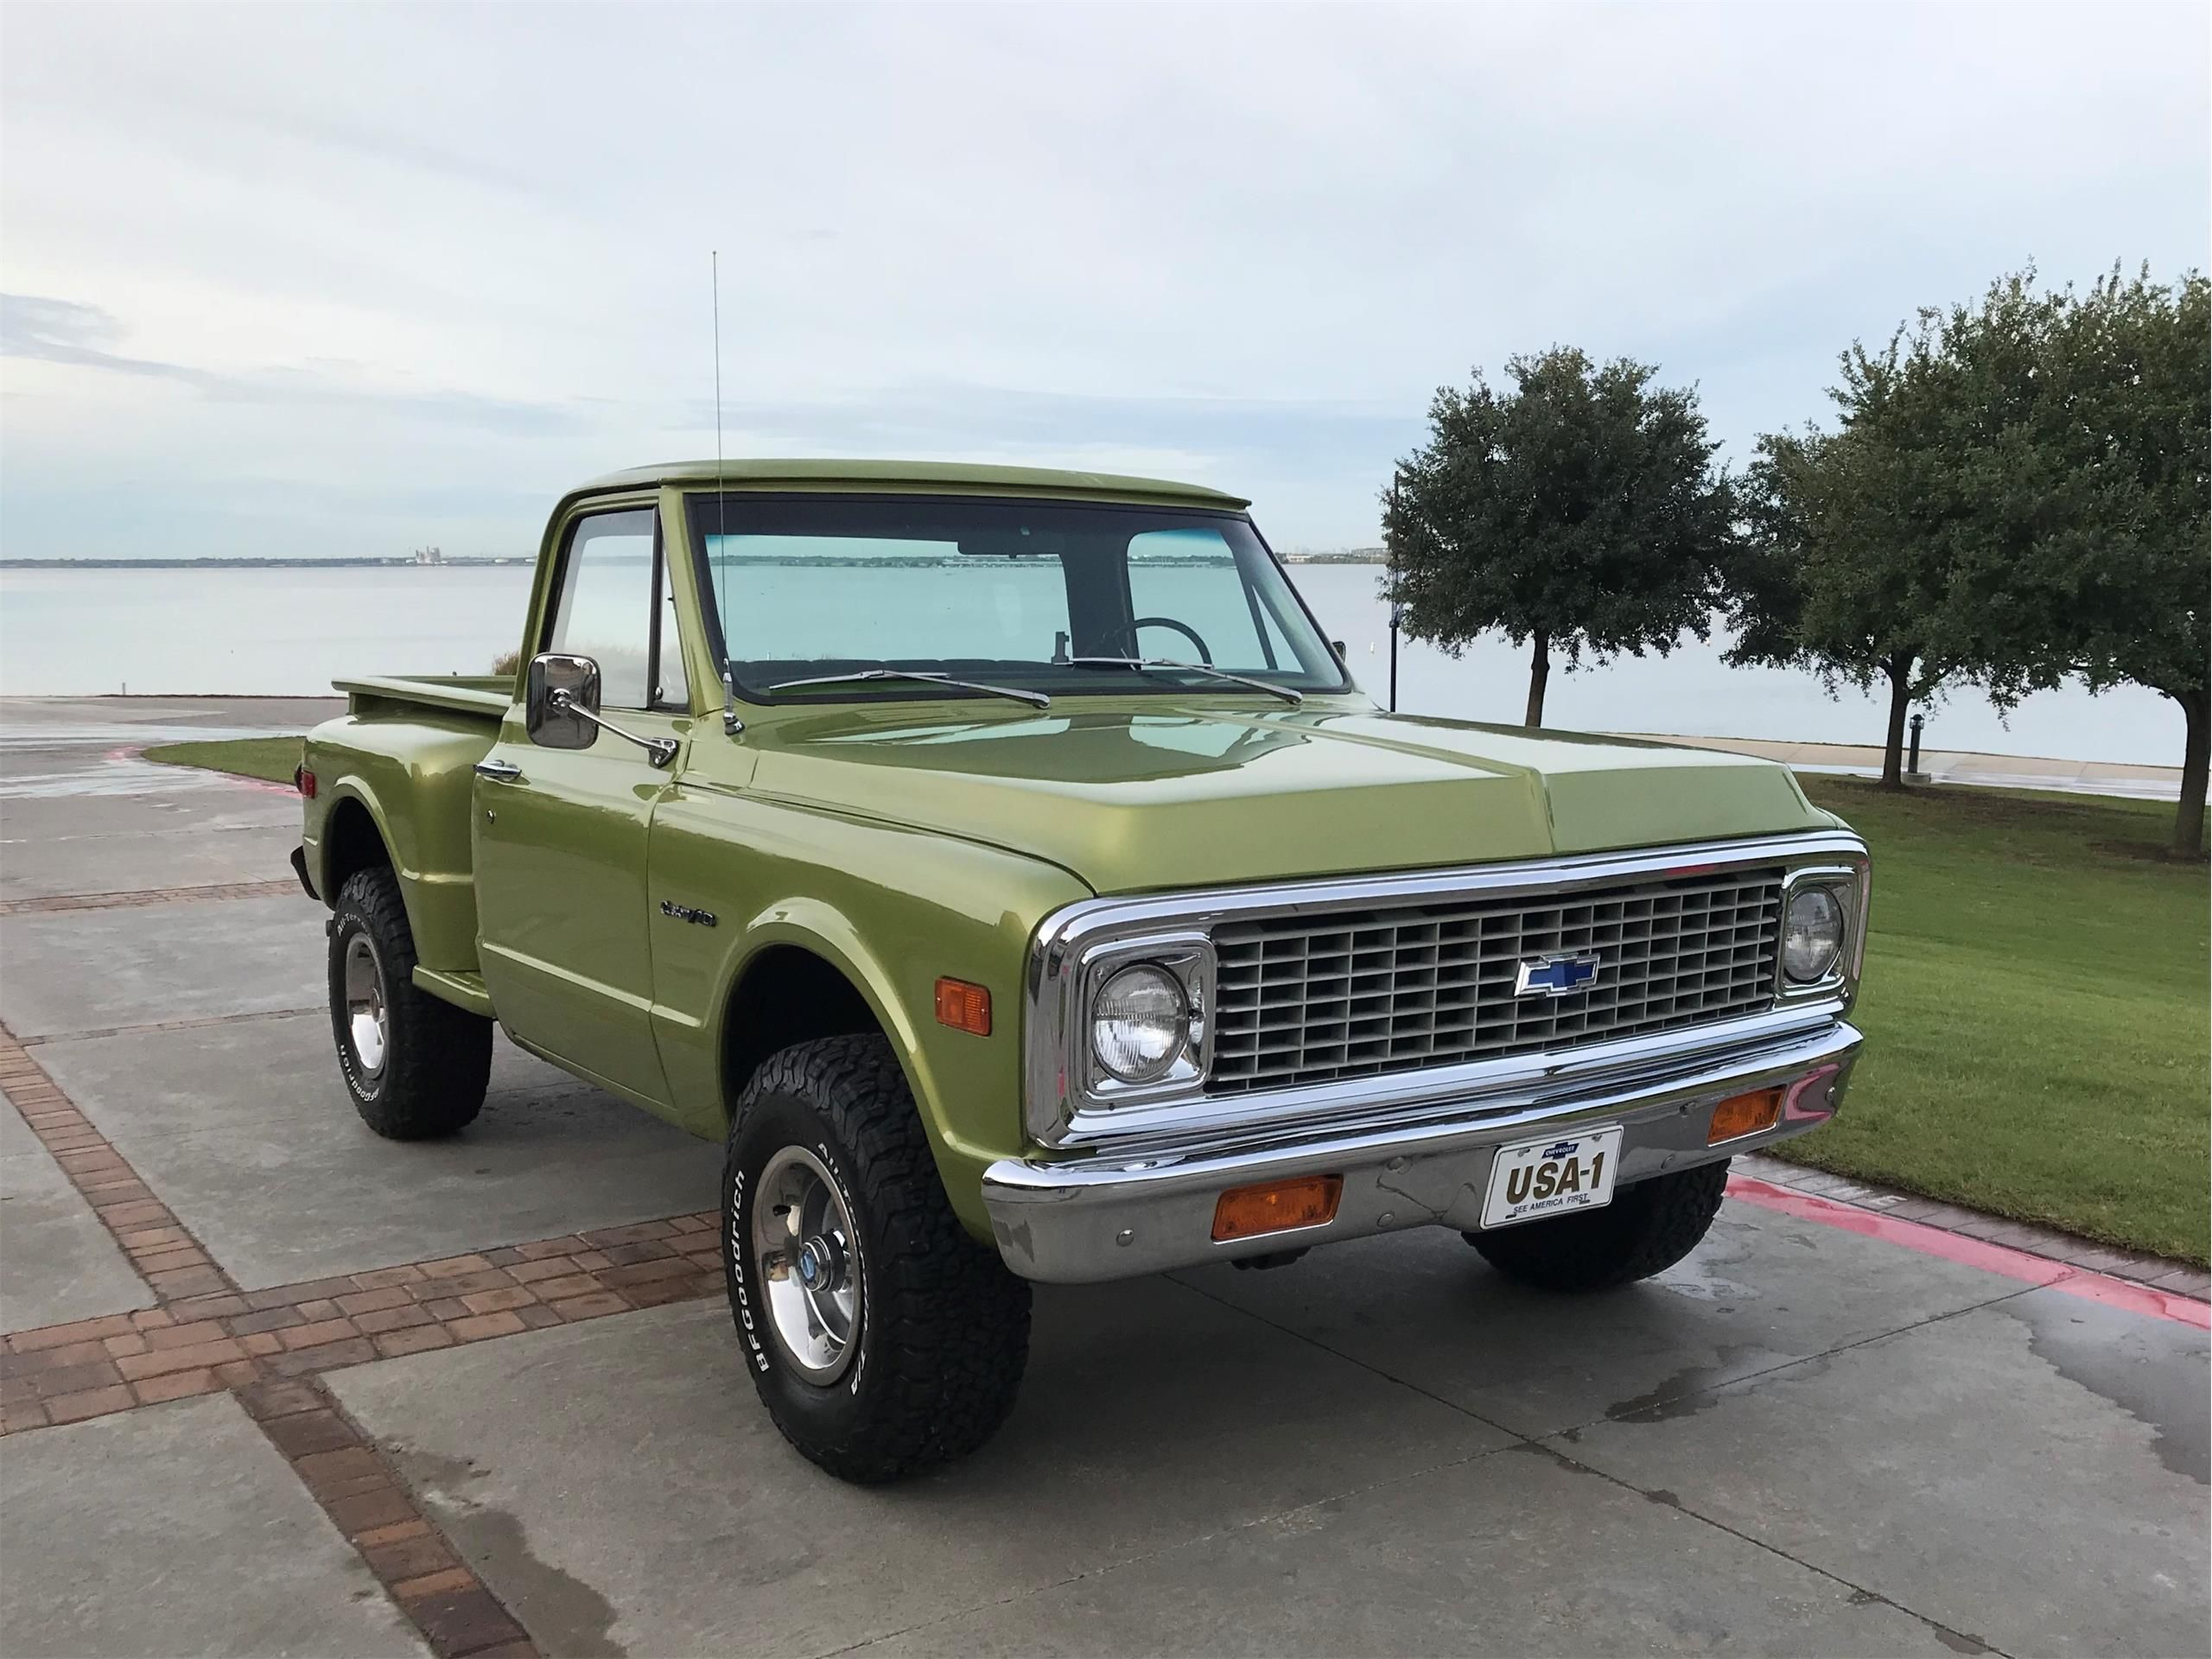 1972 Chevy Pickup For Sale Listing Id Cc 1159977 Classiccars Com Driveyourdream Classictruck Chevrolet Pickup Classic Chevy Trucks Trucks